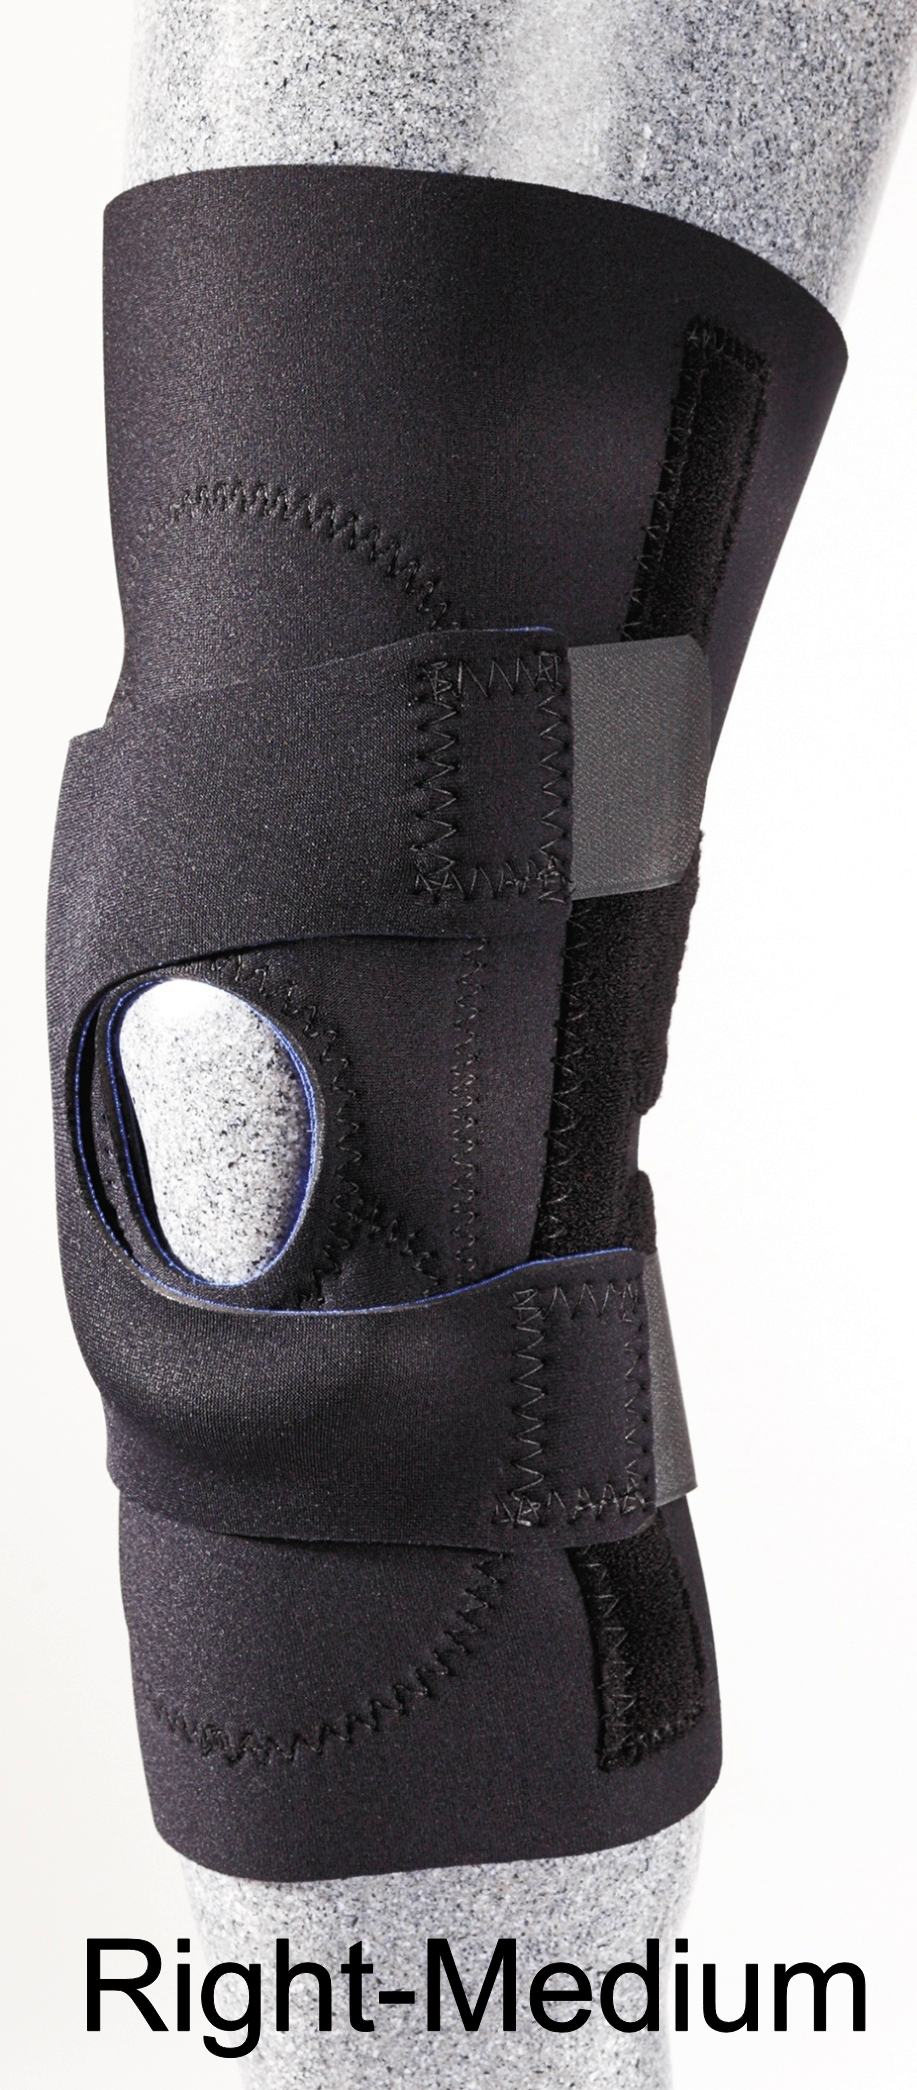 Patellar Stabilizer (J-Brace) with Pull Straps - Right - Medium - (14